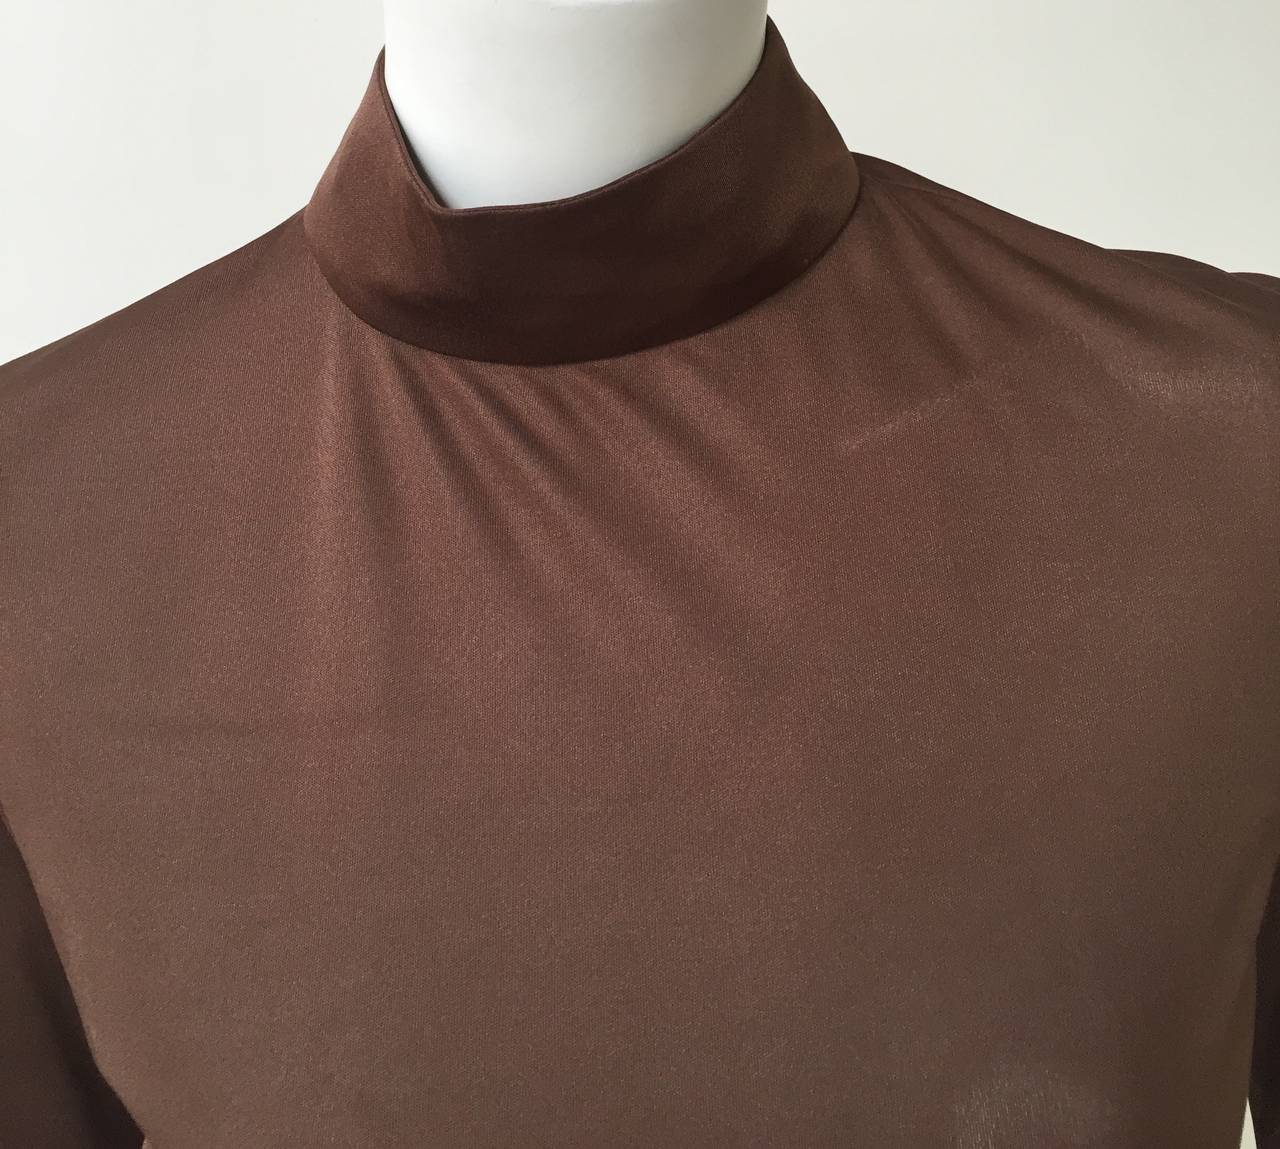 Emilio Pucci 70s Silk Brown Blouse Size 6. 2